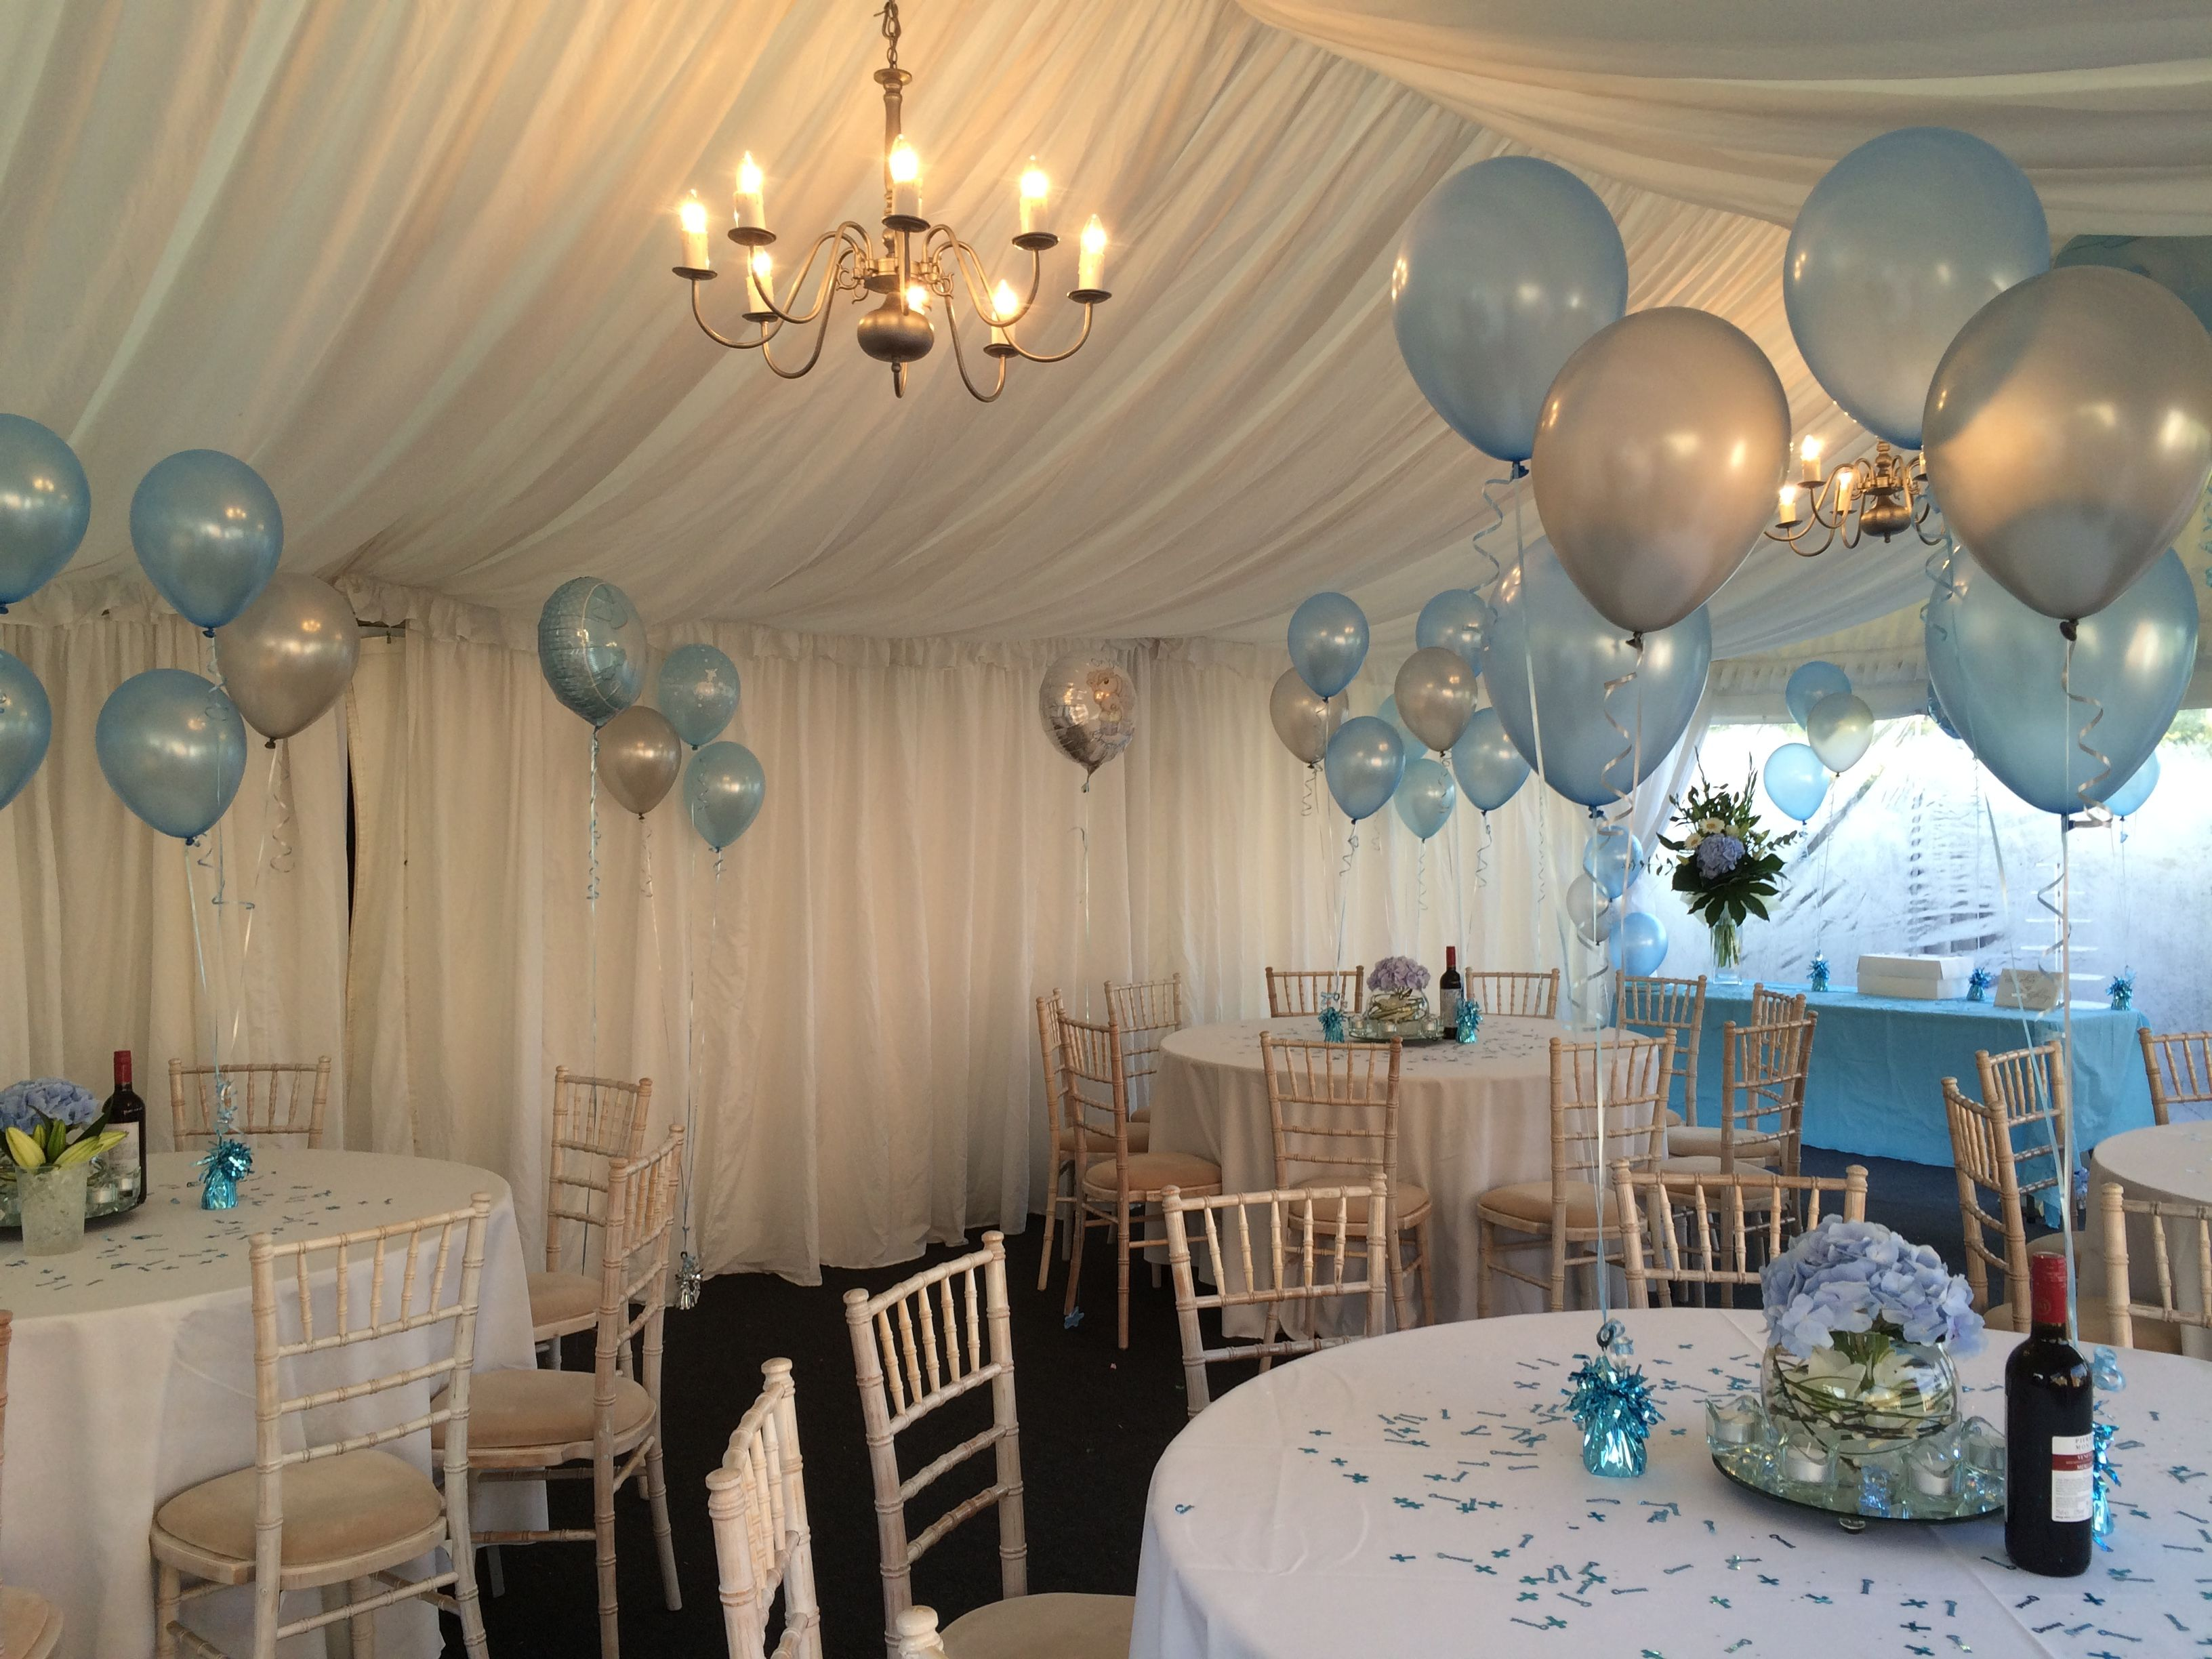 complementary floor and table balloon decorations all ready for